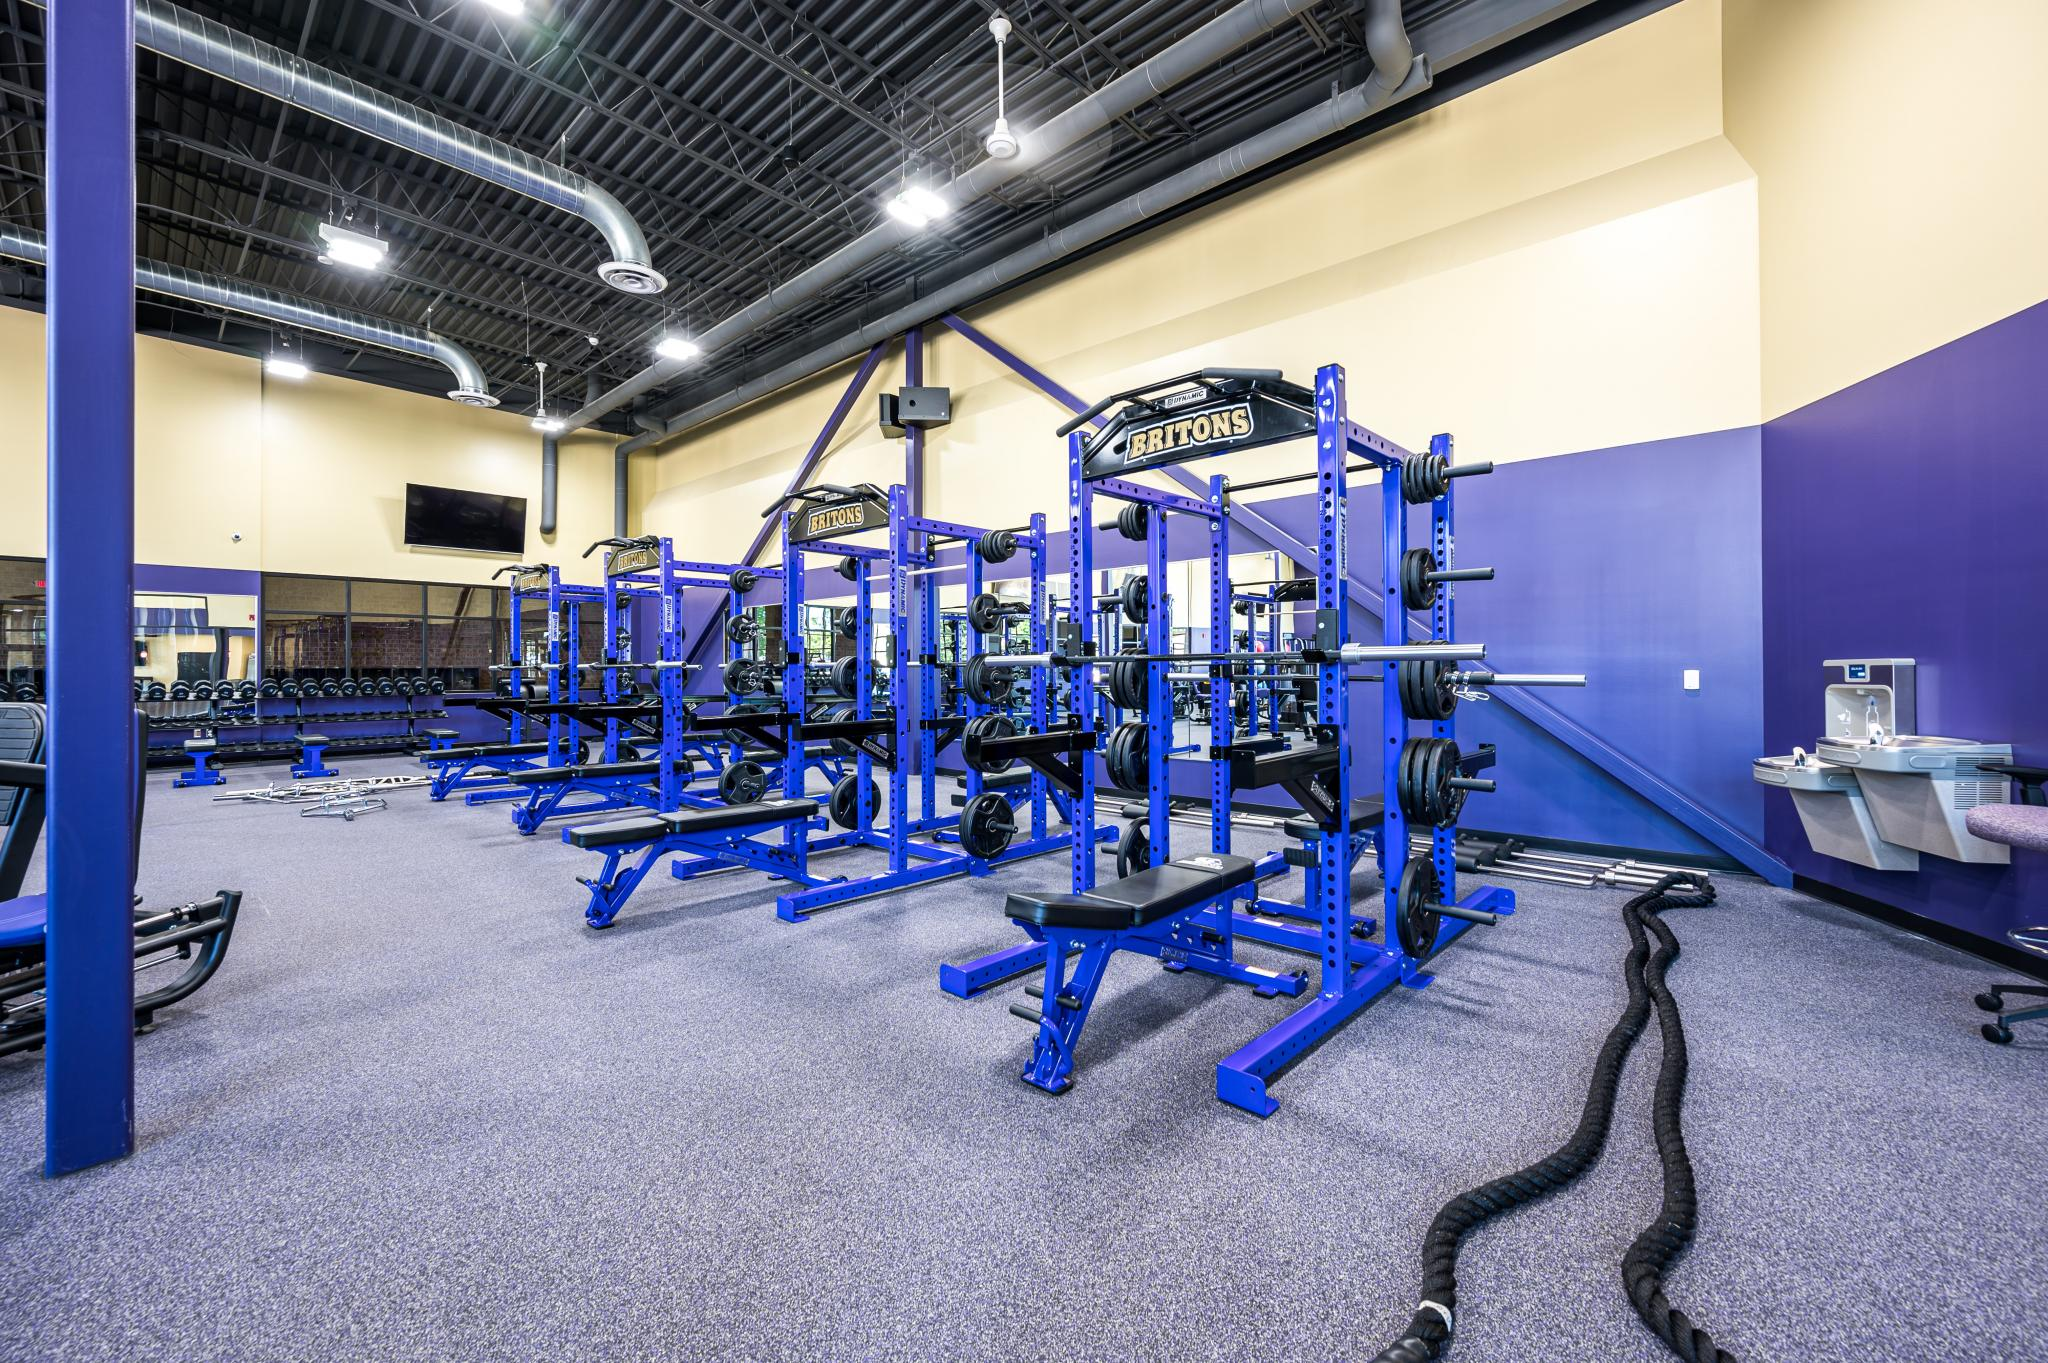 image of purple workout equipment